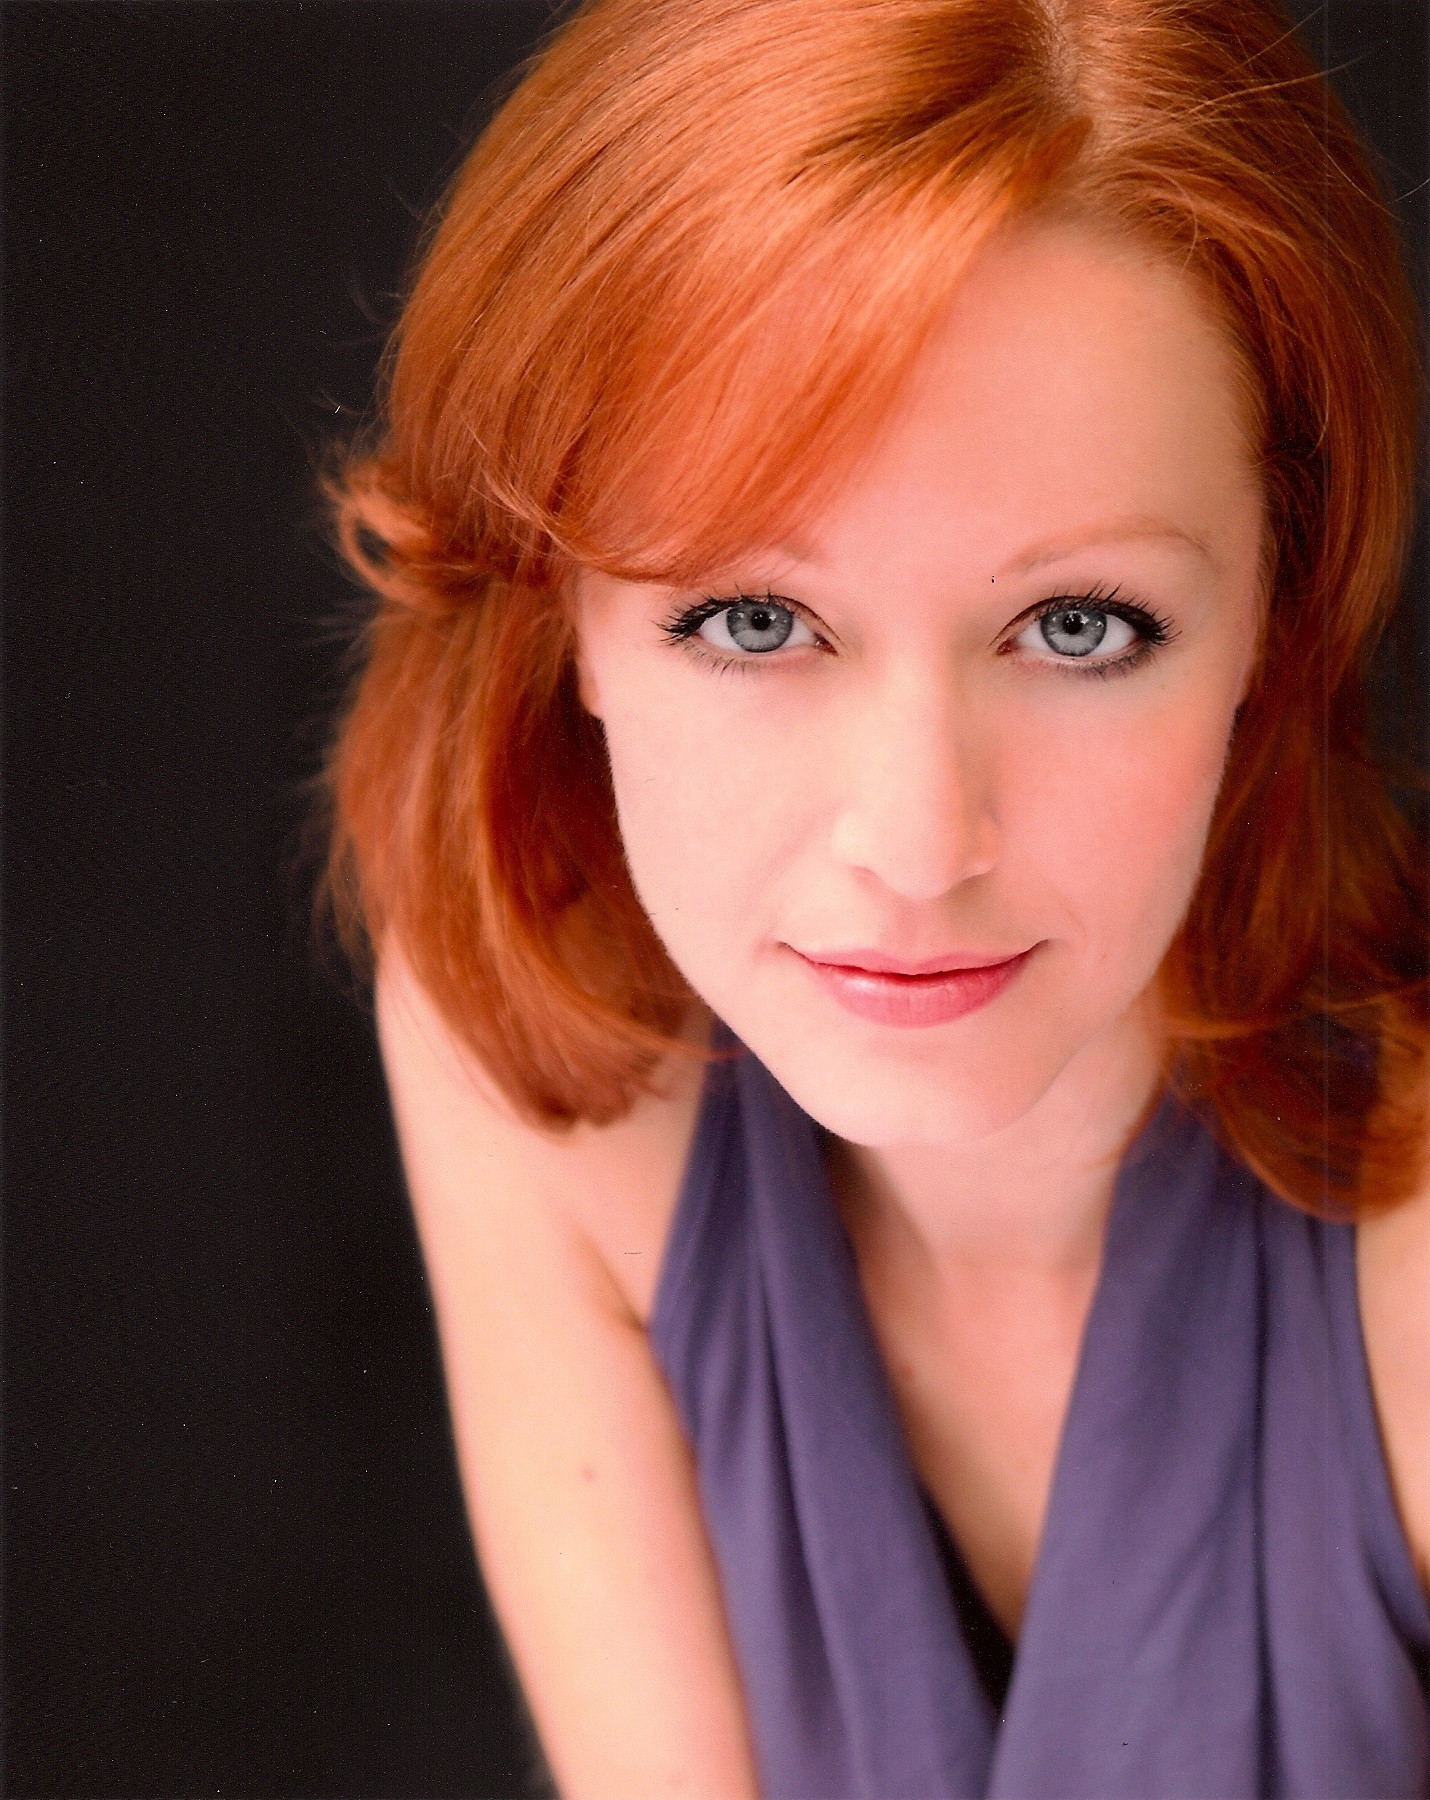 Lindy Booth Nude Photos 22